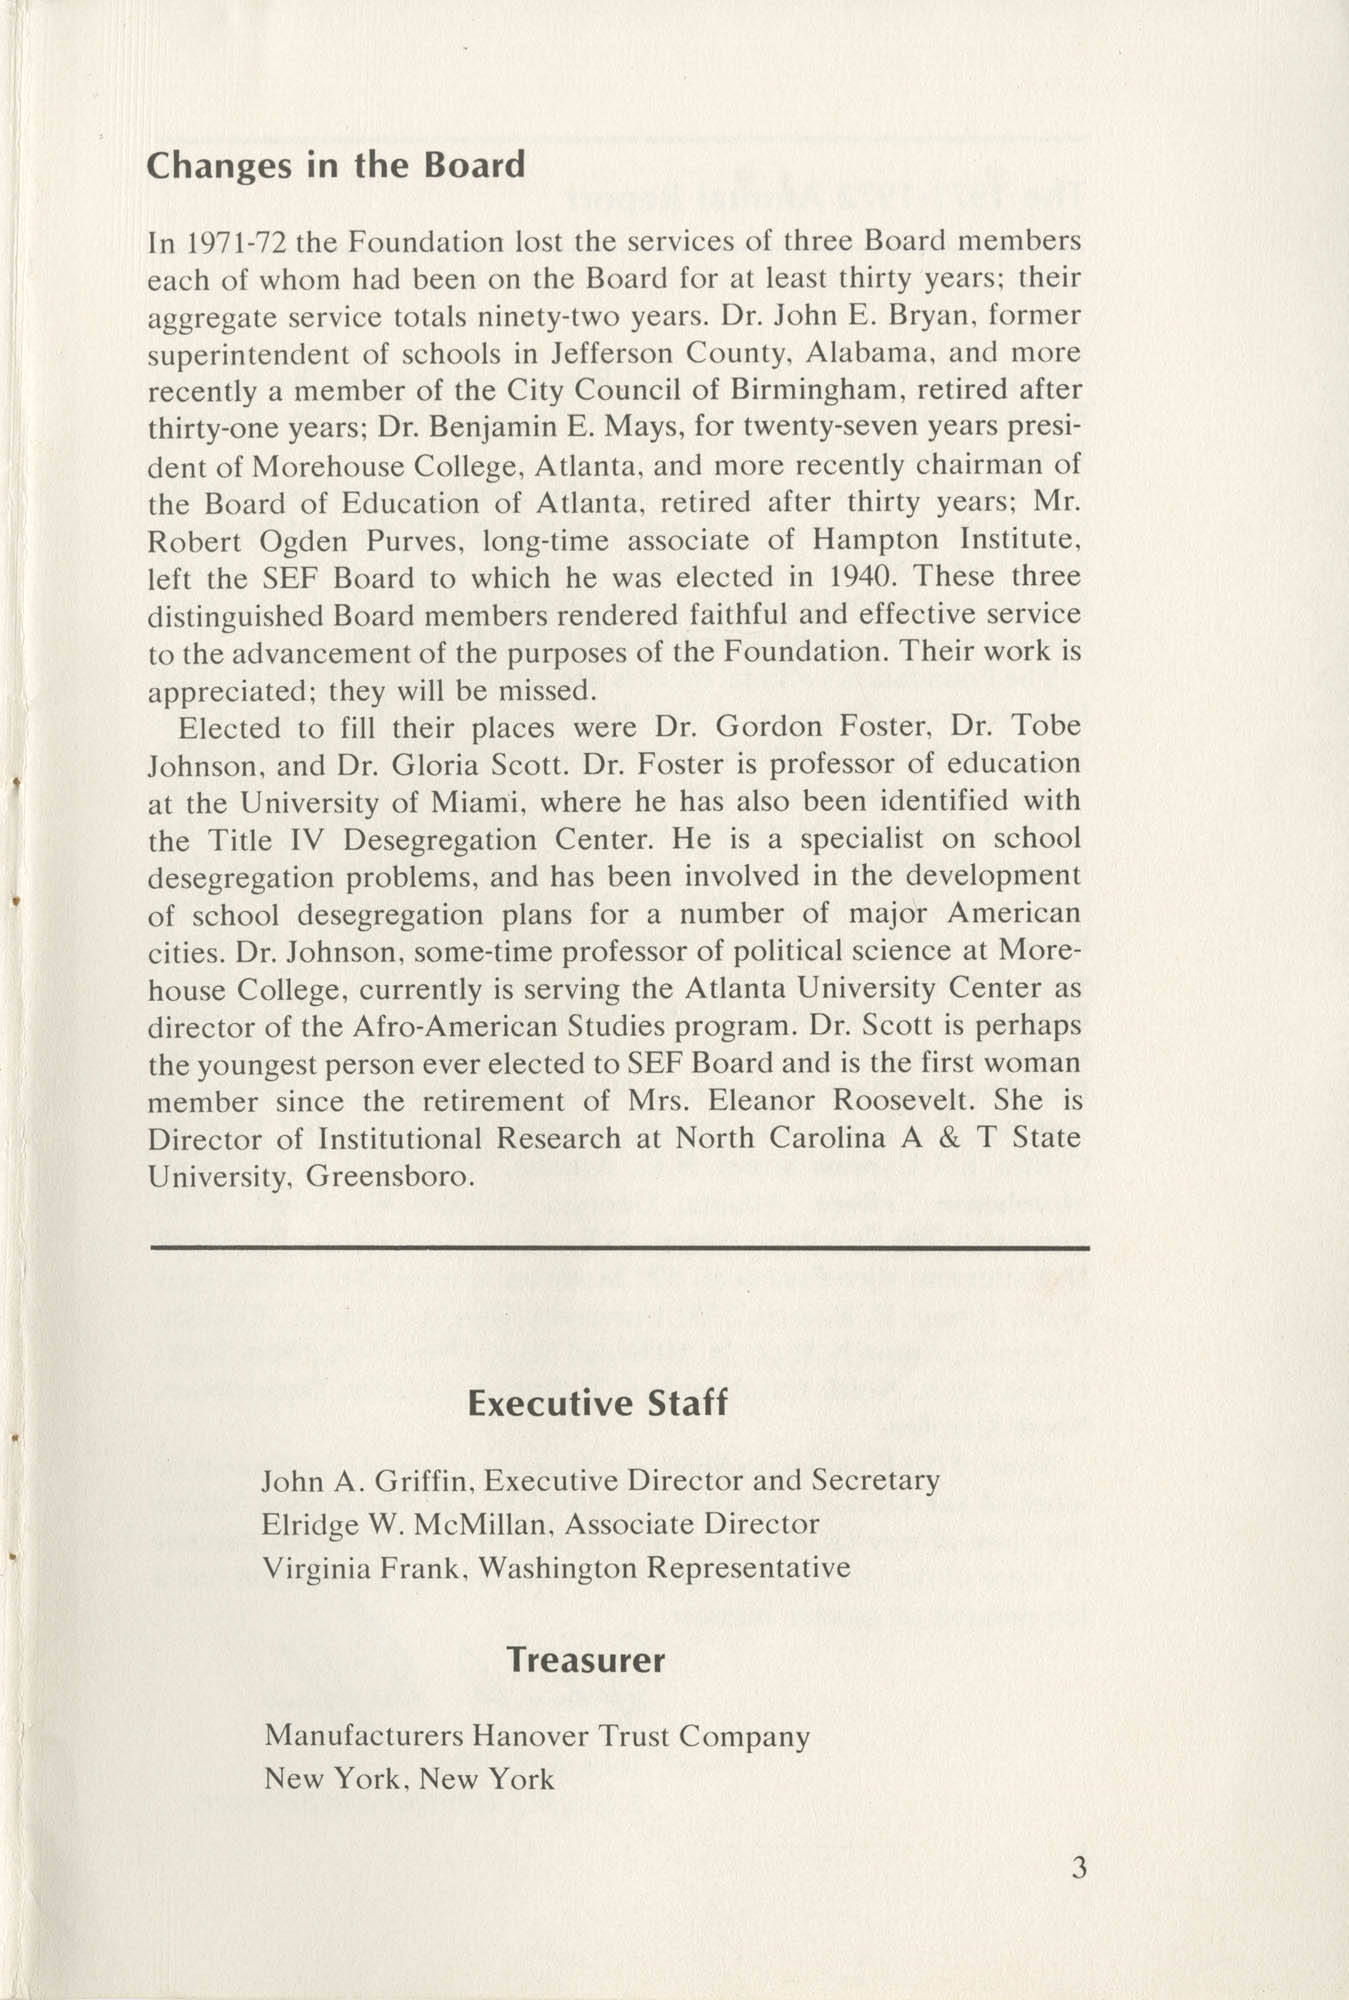 Southern Education Foundation, Annual Report 1971-1972, Page 3